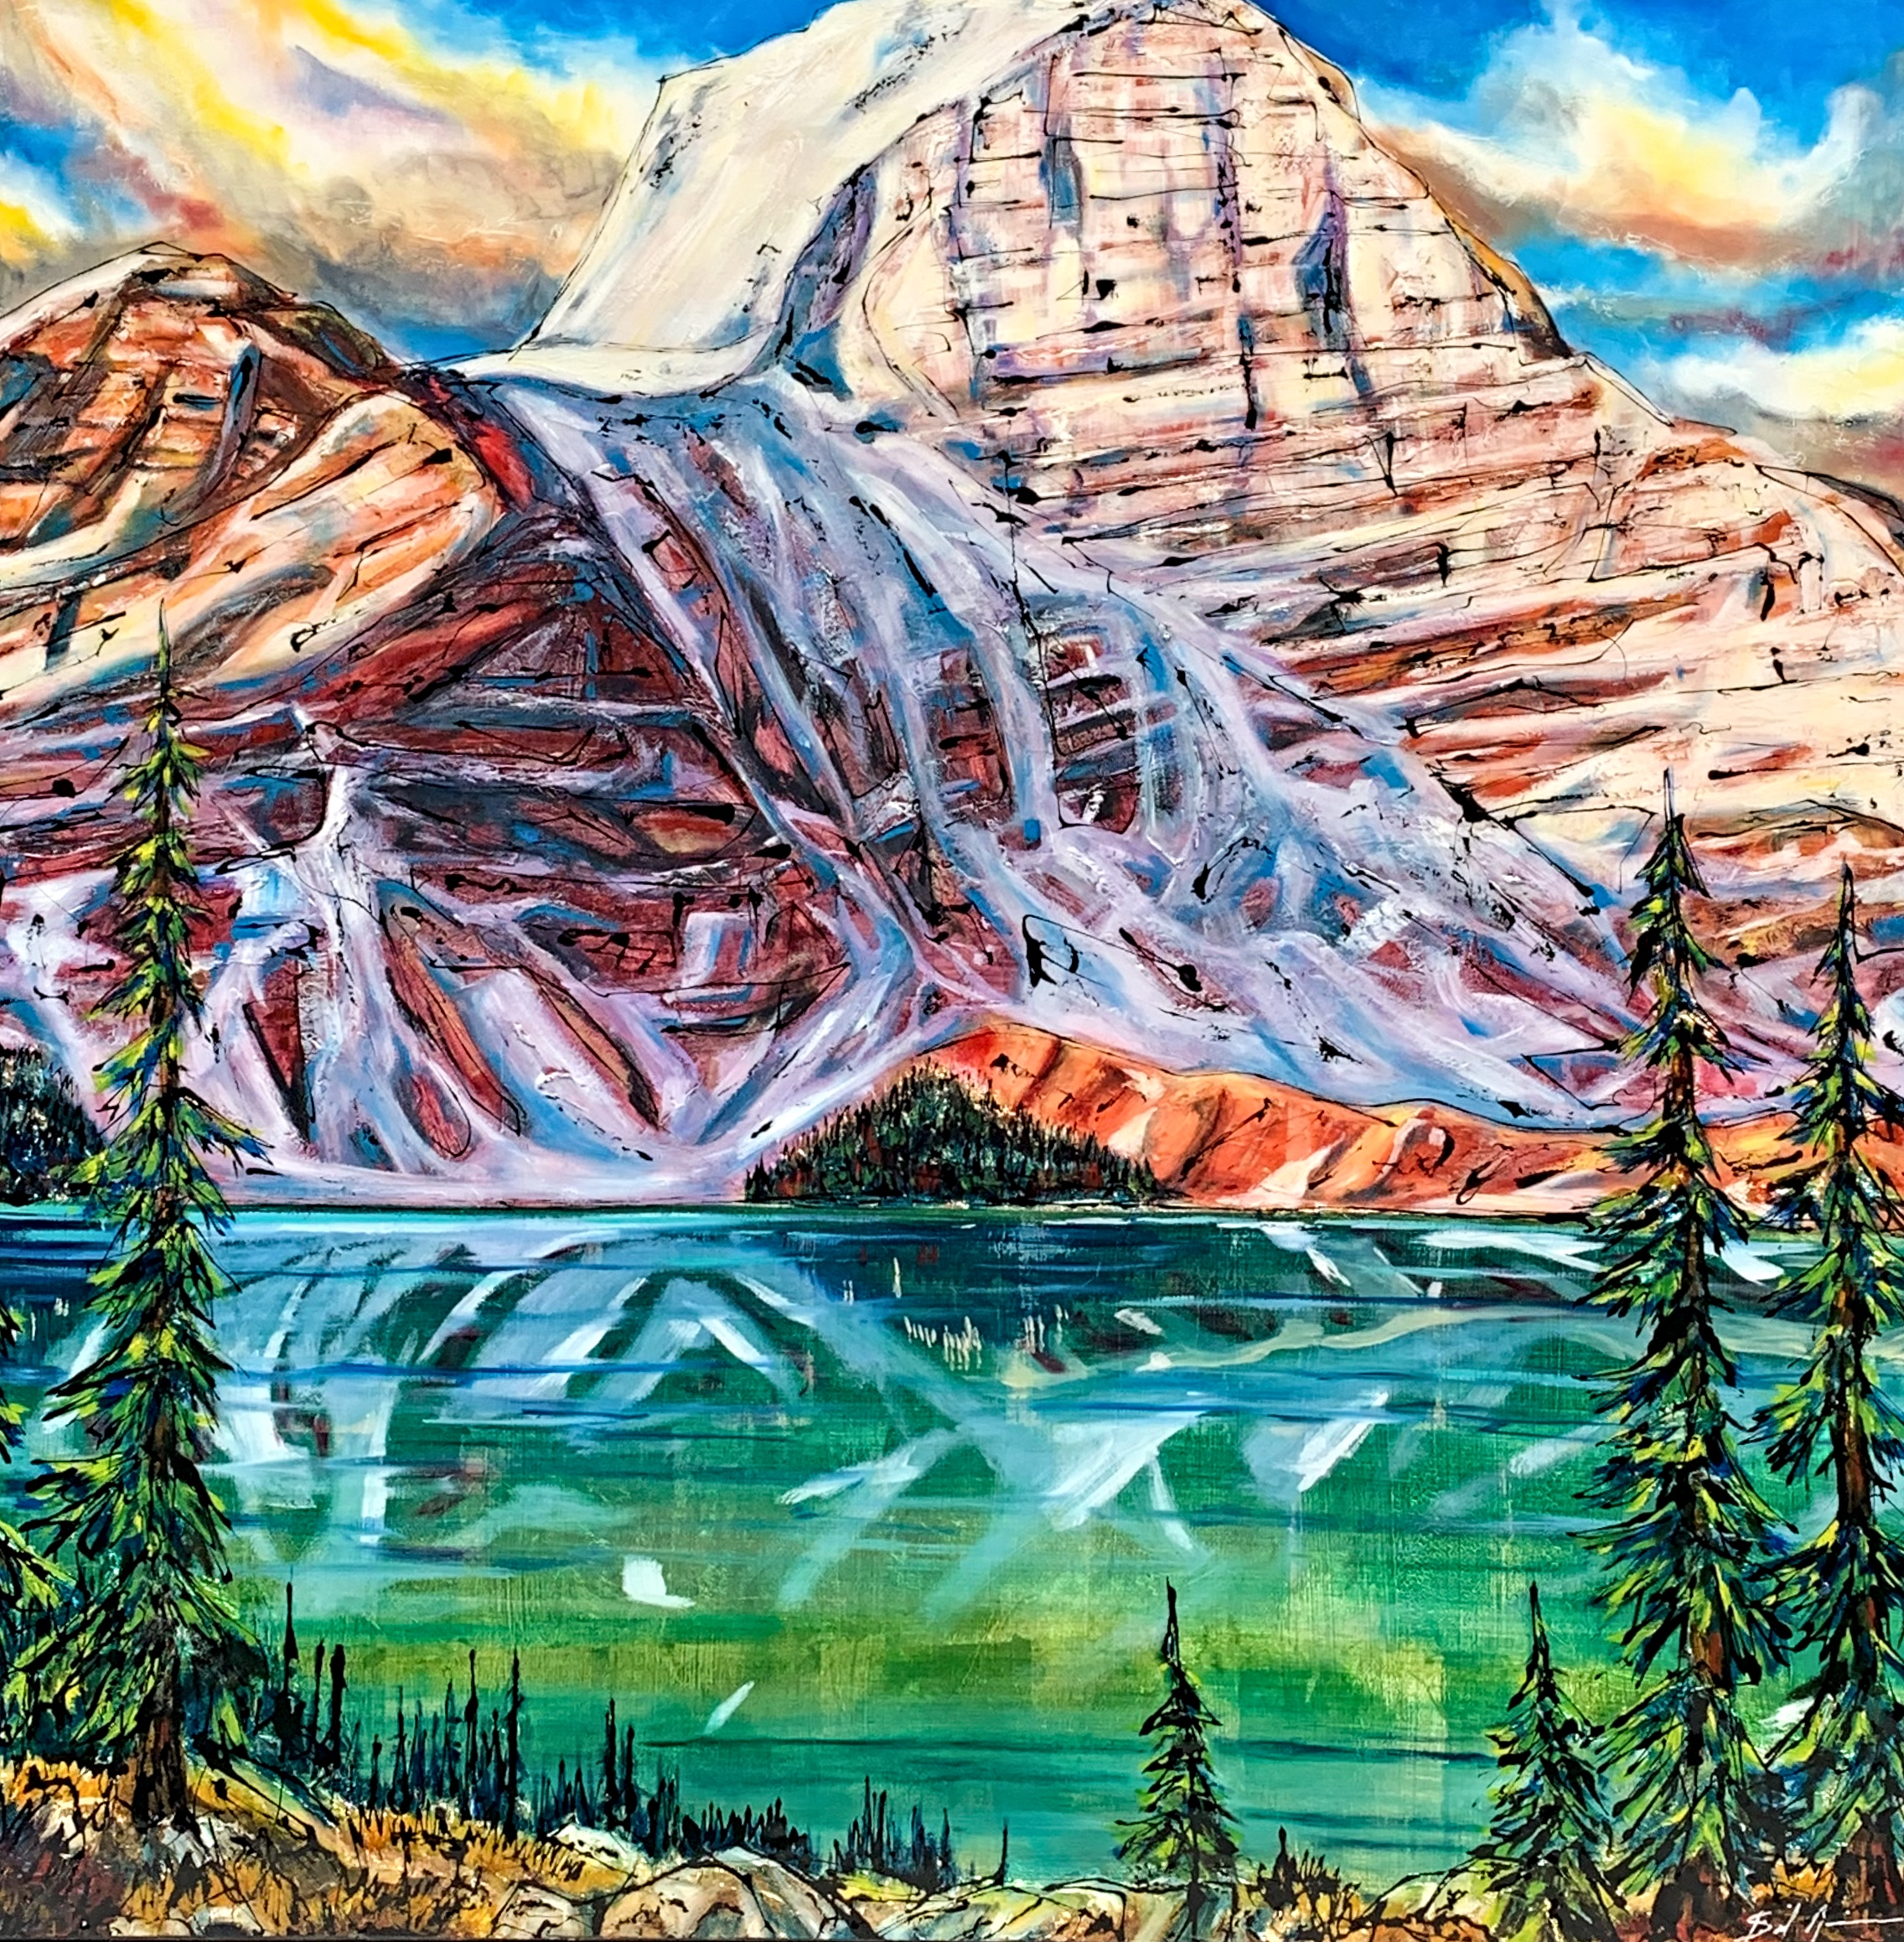 Prized Possession, mixed media landscape painting by David Zimmerman | Effusion Art Gallery + Cast Glass Studio, Invermere BC